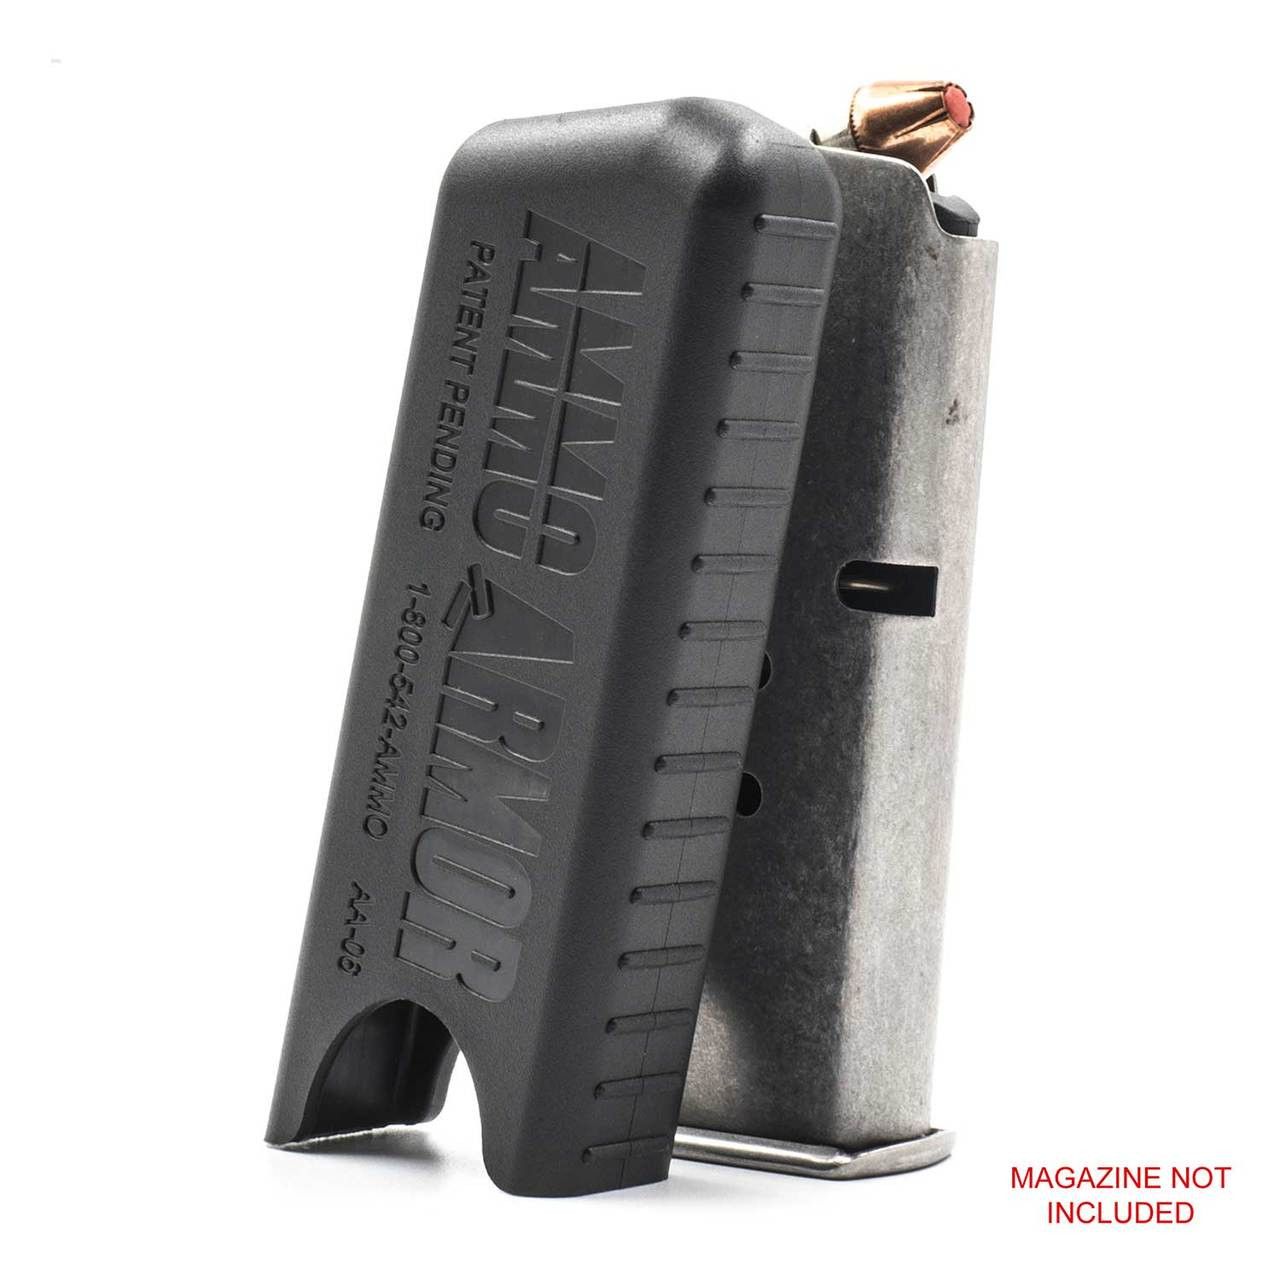 Colt Mustang .380 Magazine Protector